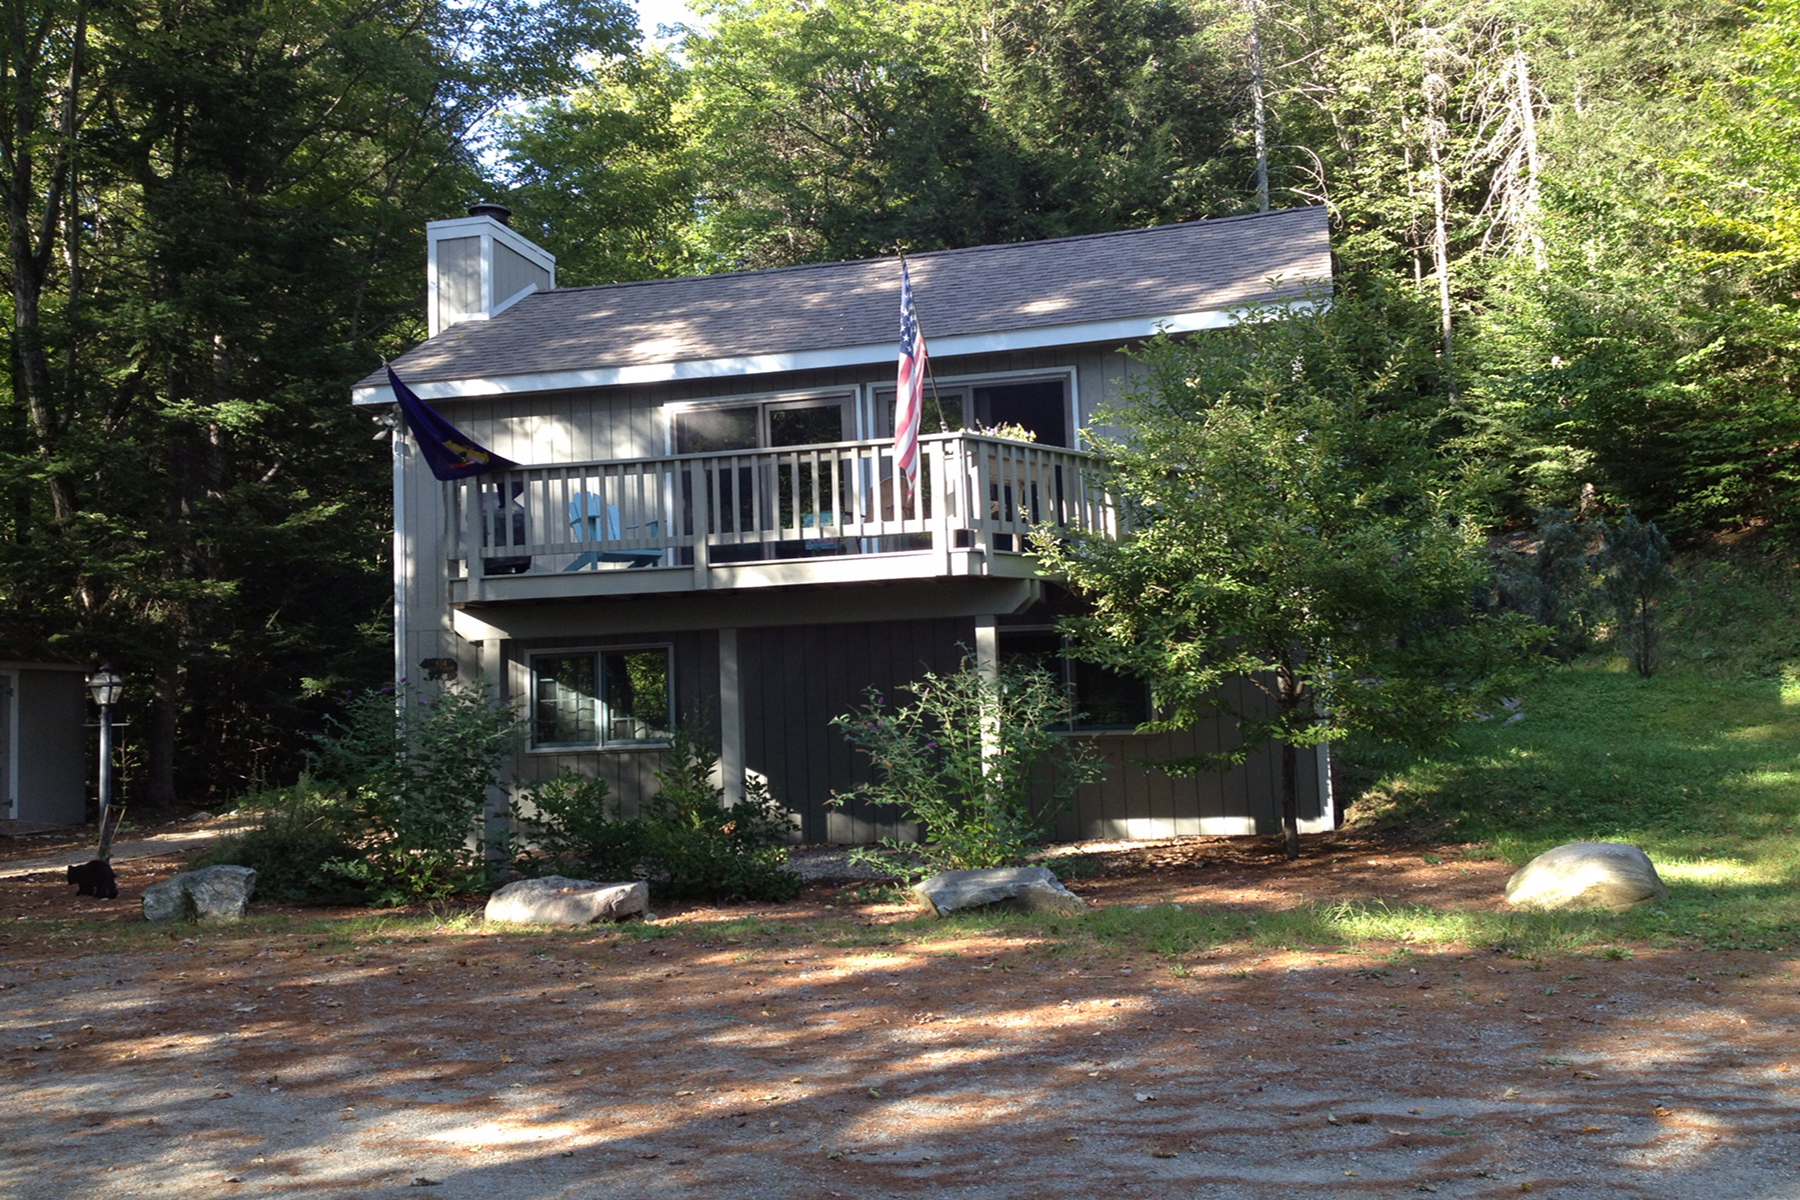 Single Family Home for Sale at 634 Derry Woods Road, Londonderry 634 Derry Woods Rd Londonderry, Vermont 05148 United States